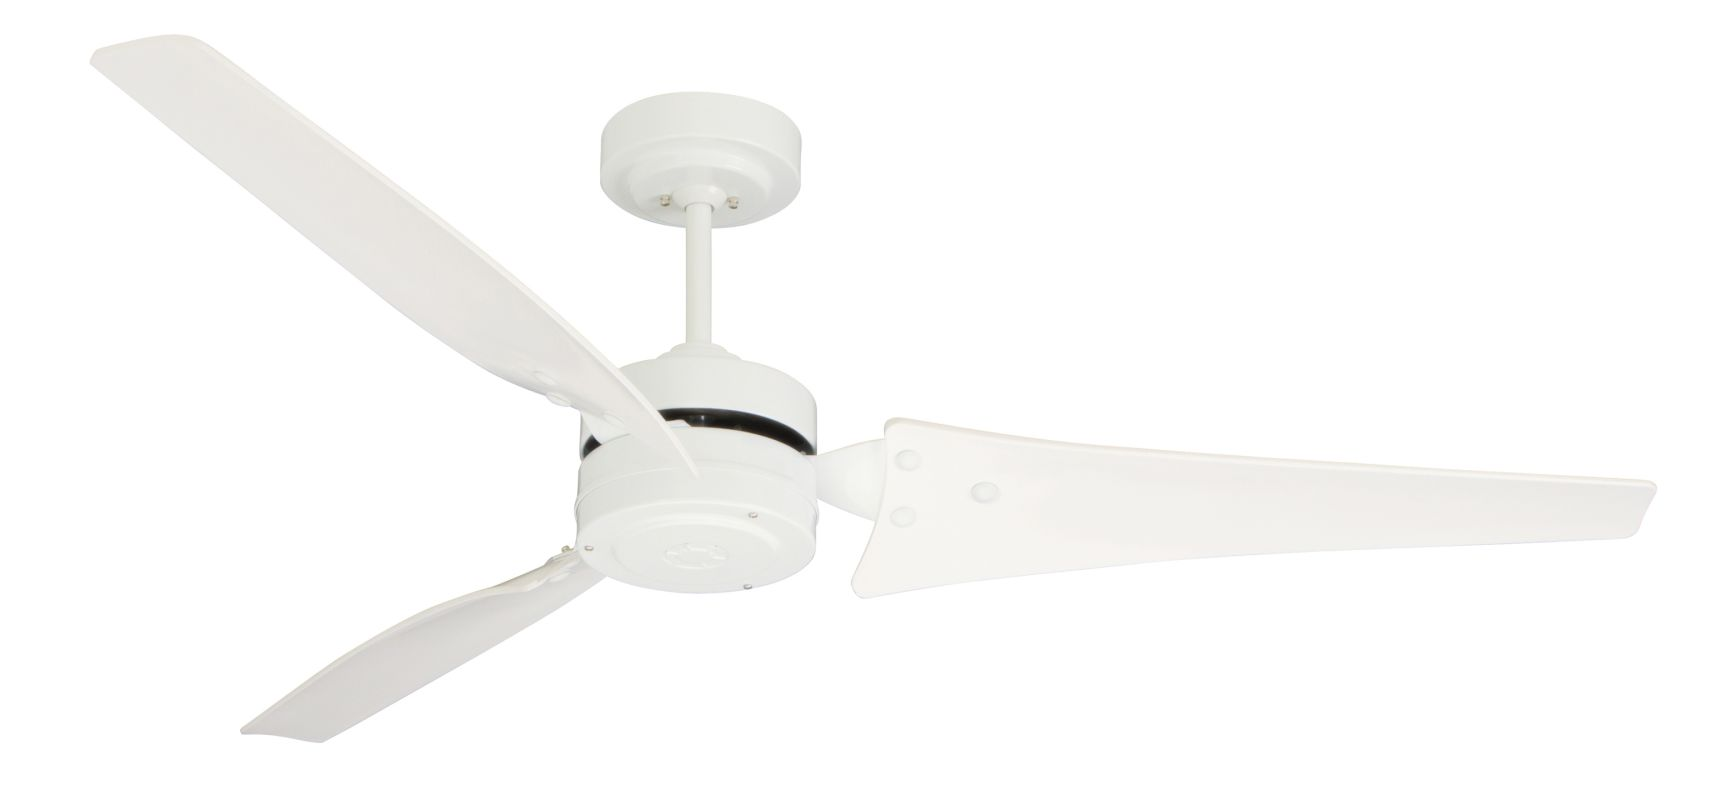 "Emerson CF765 Loft 60"" 3 Blade Ceiling Fan - Blades Included Appliance"